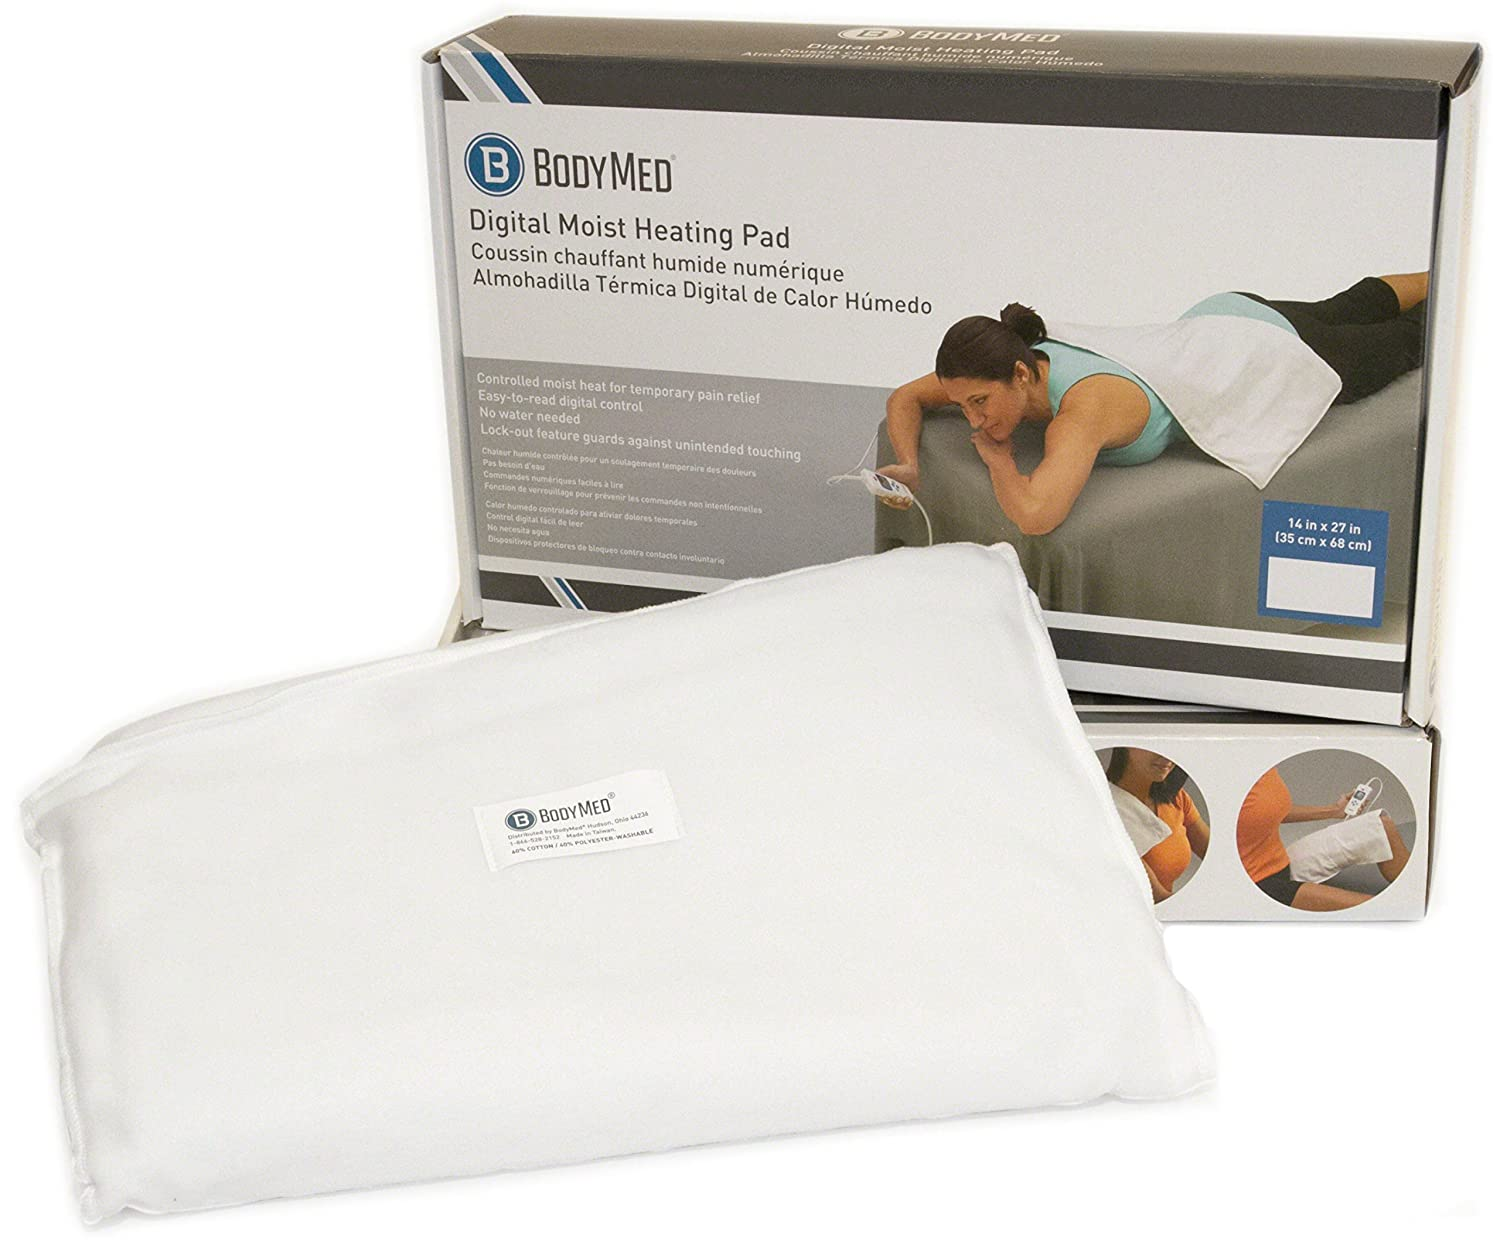 Amazon.com: BodyMed Digital Moist Heating Pad : 14